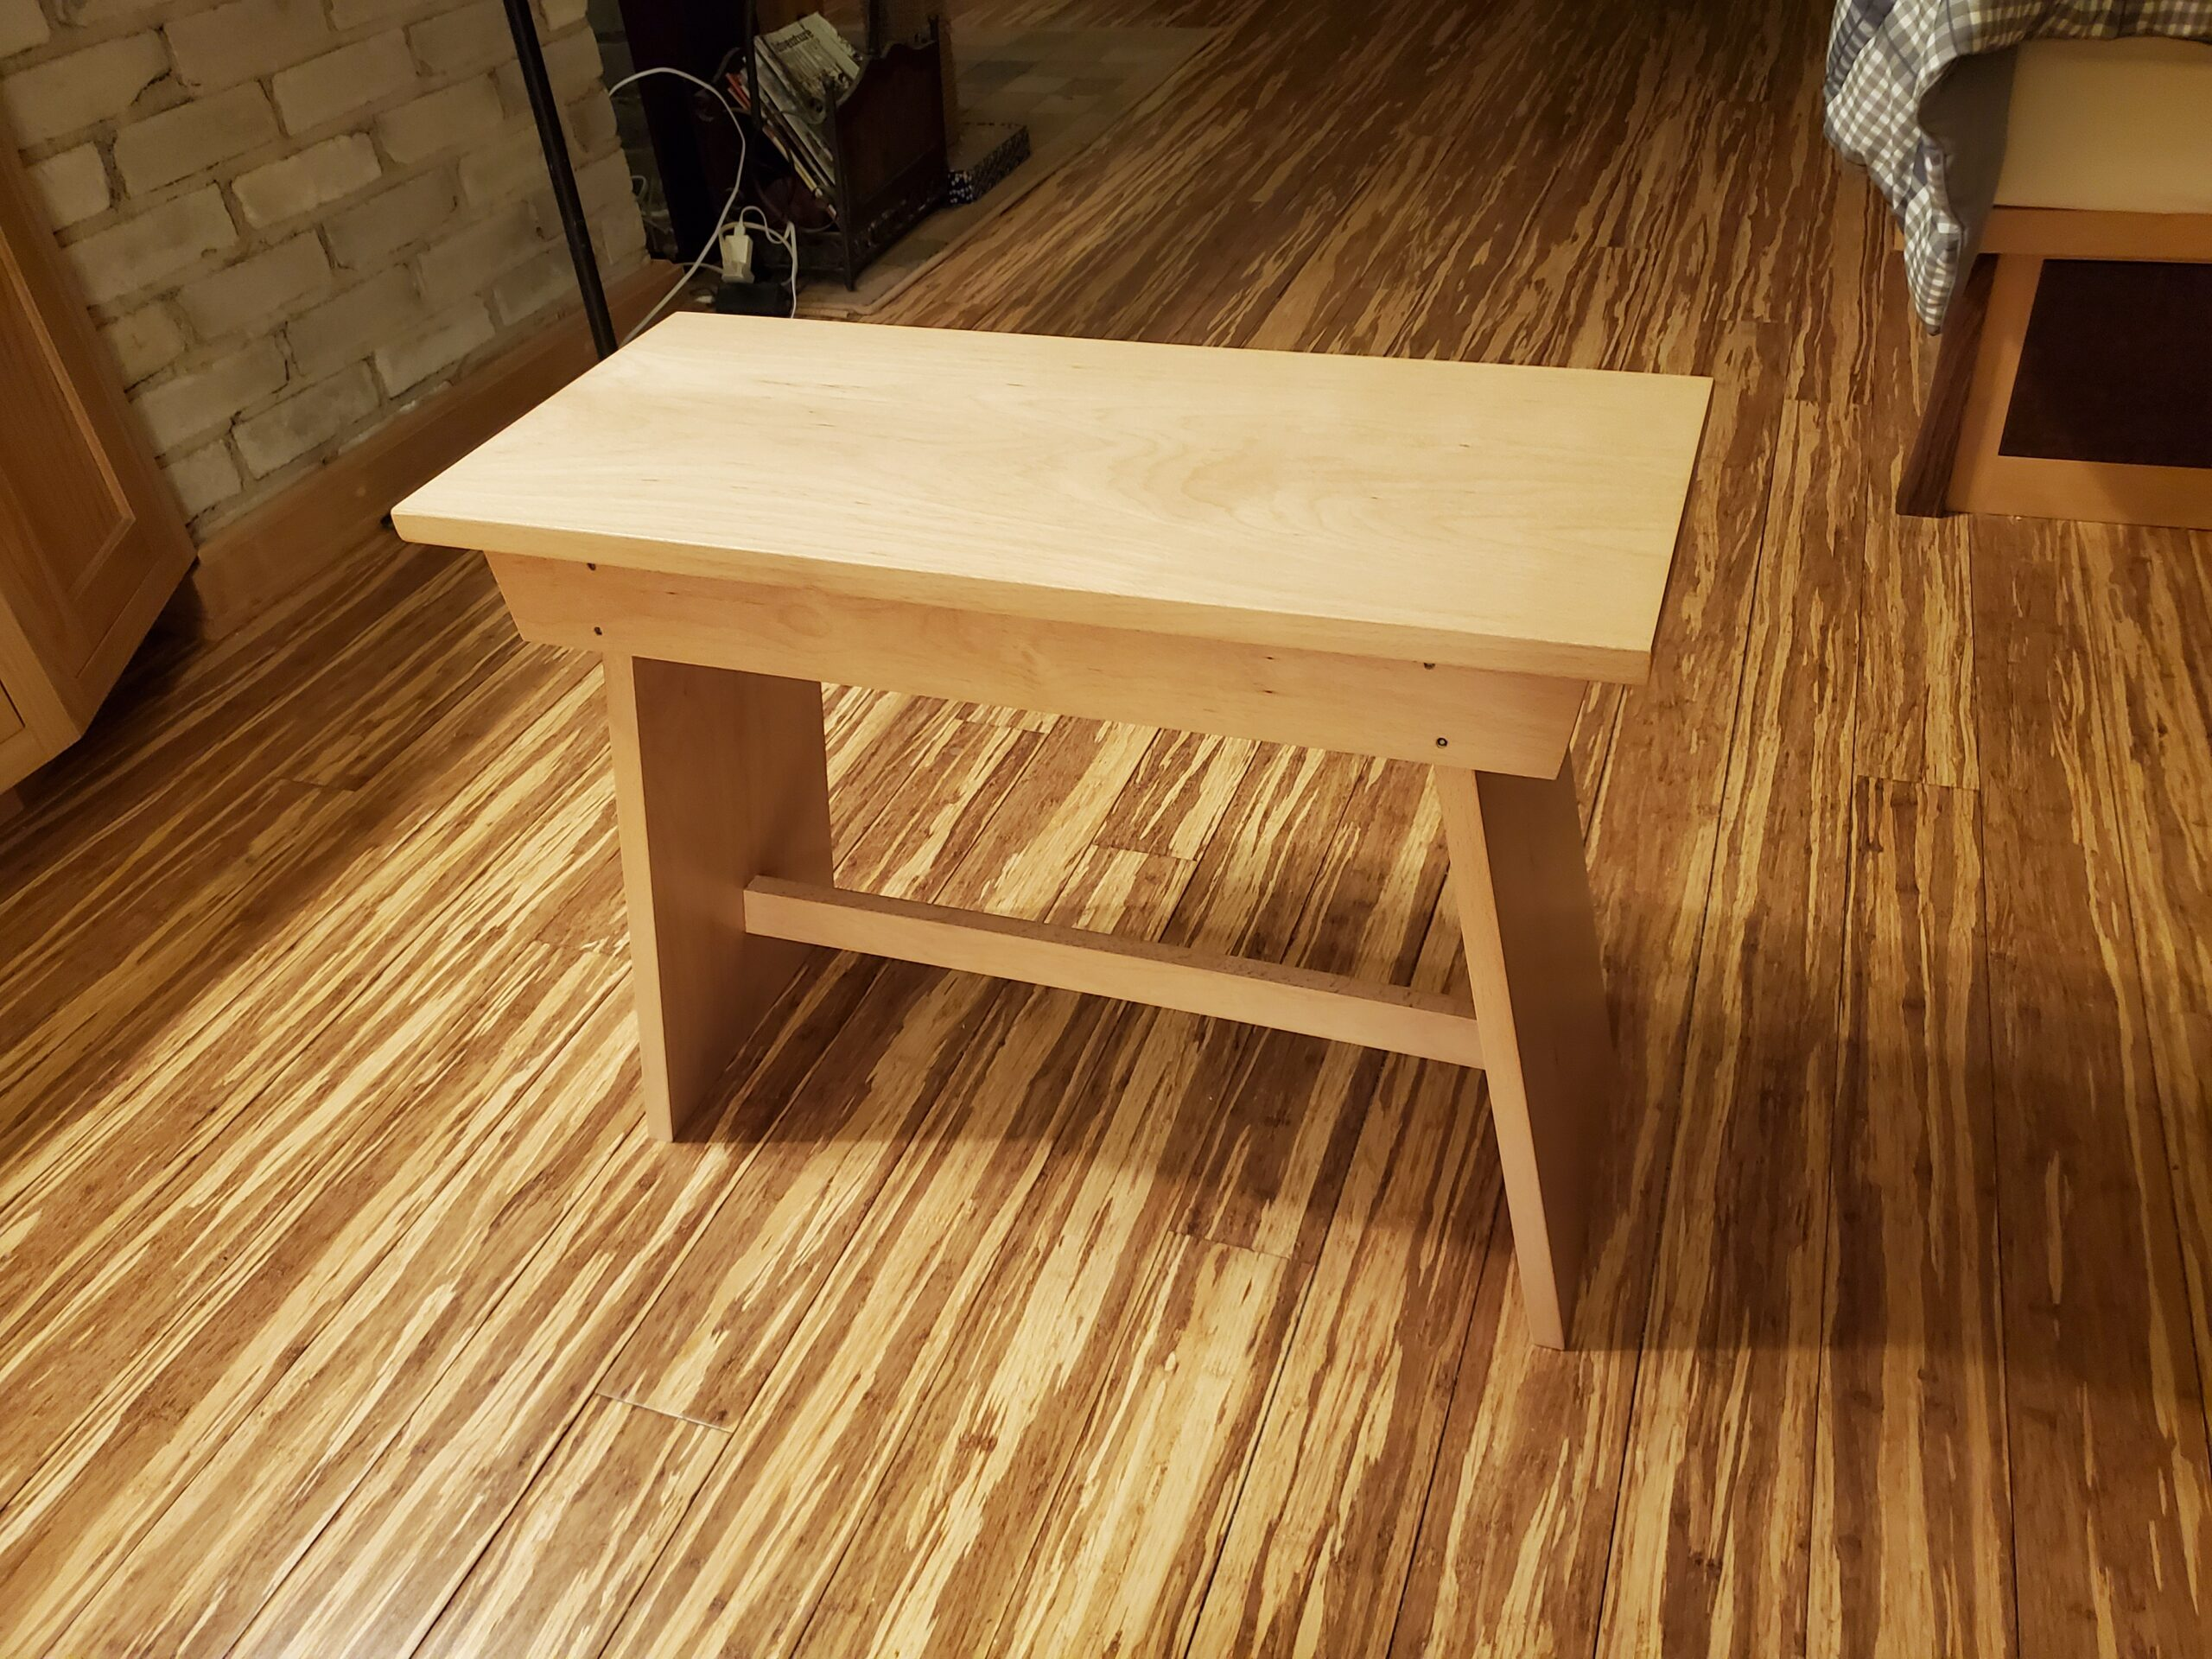 Hand-crafted Beech wood bench